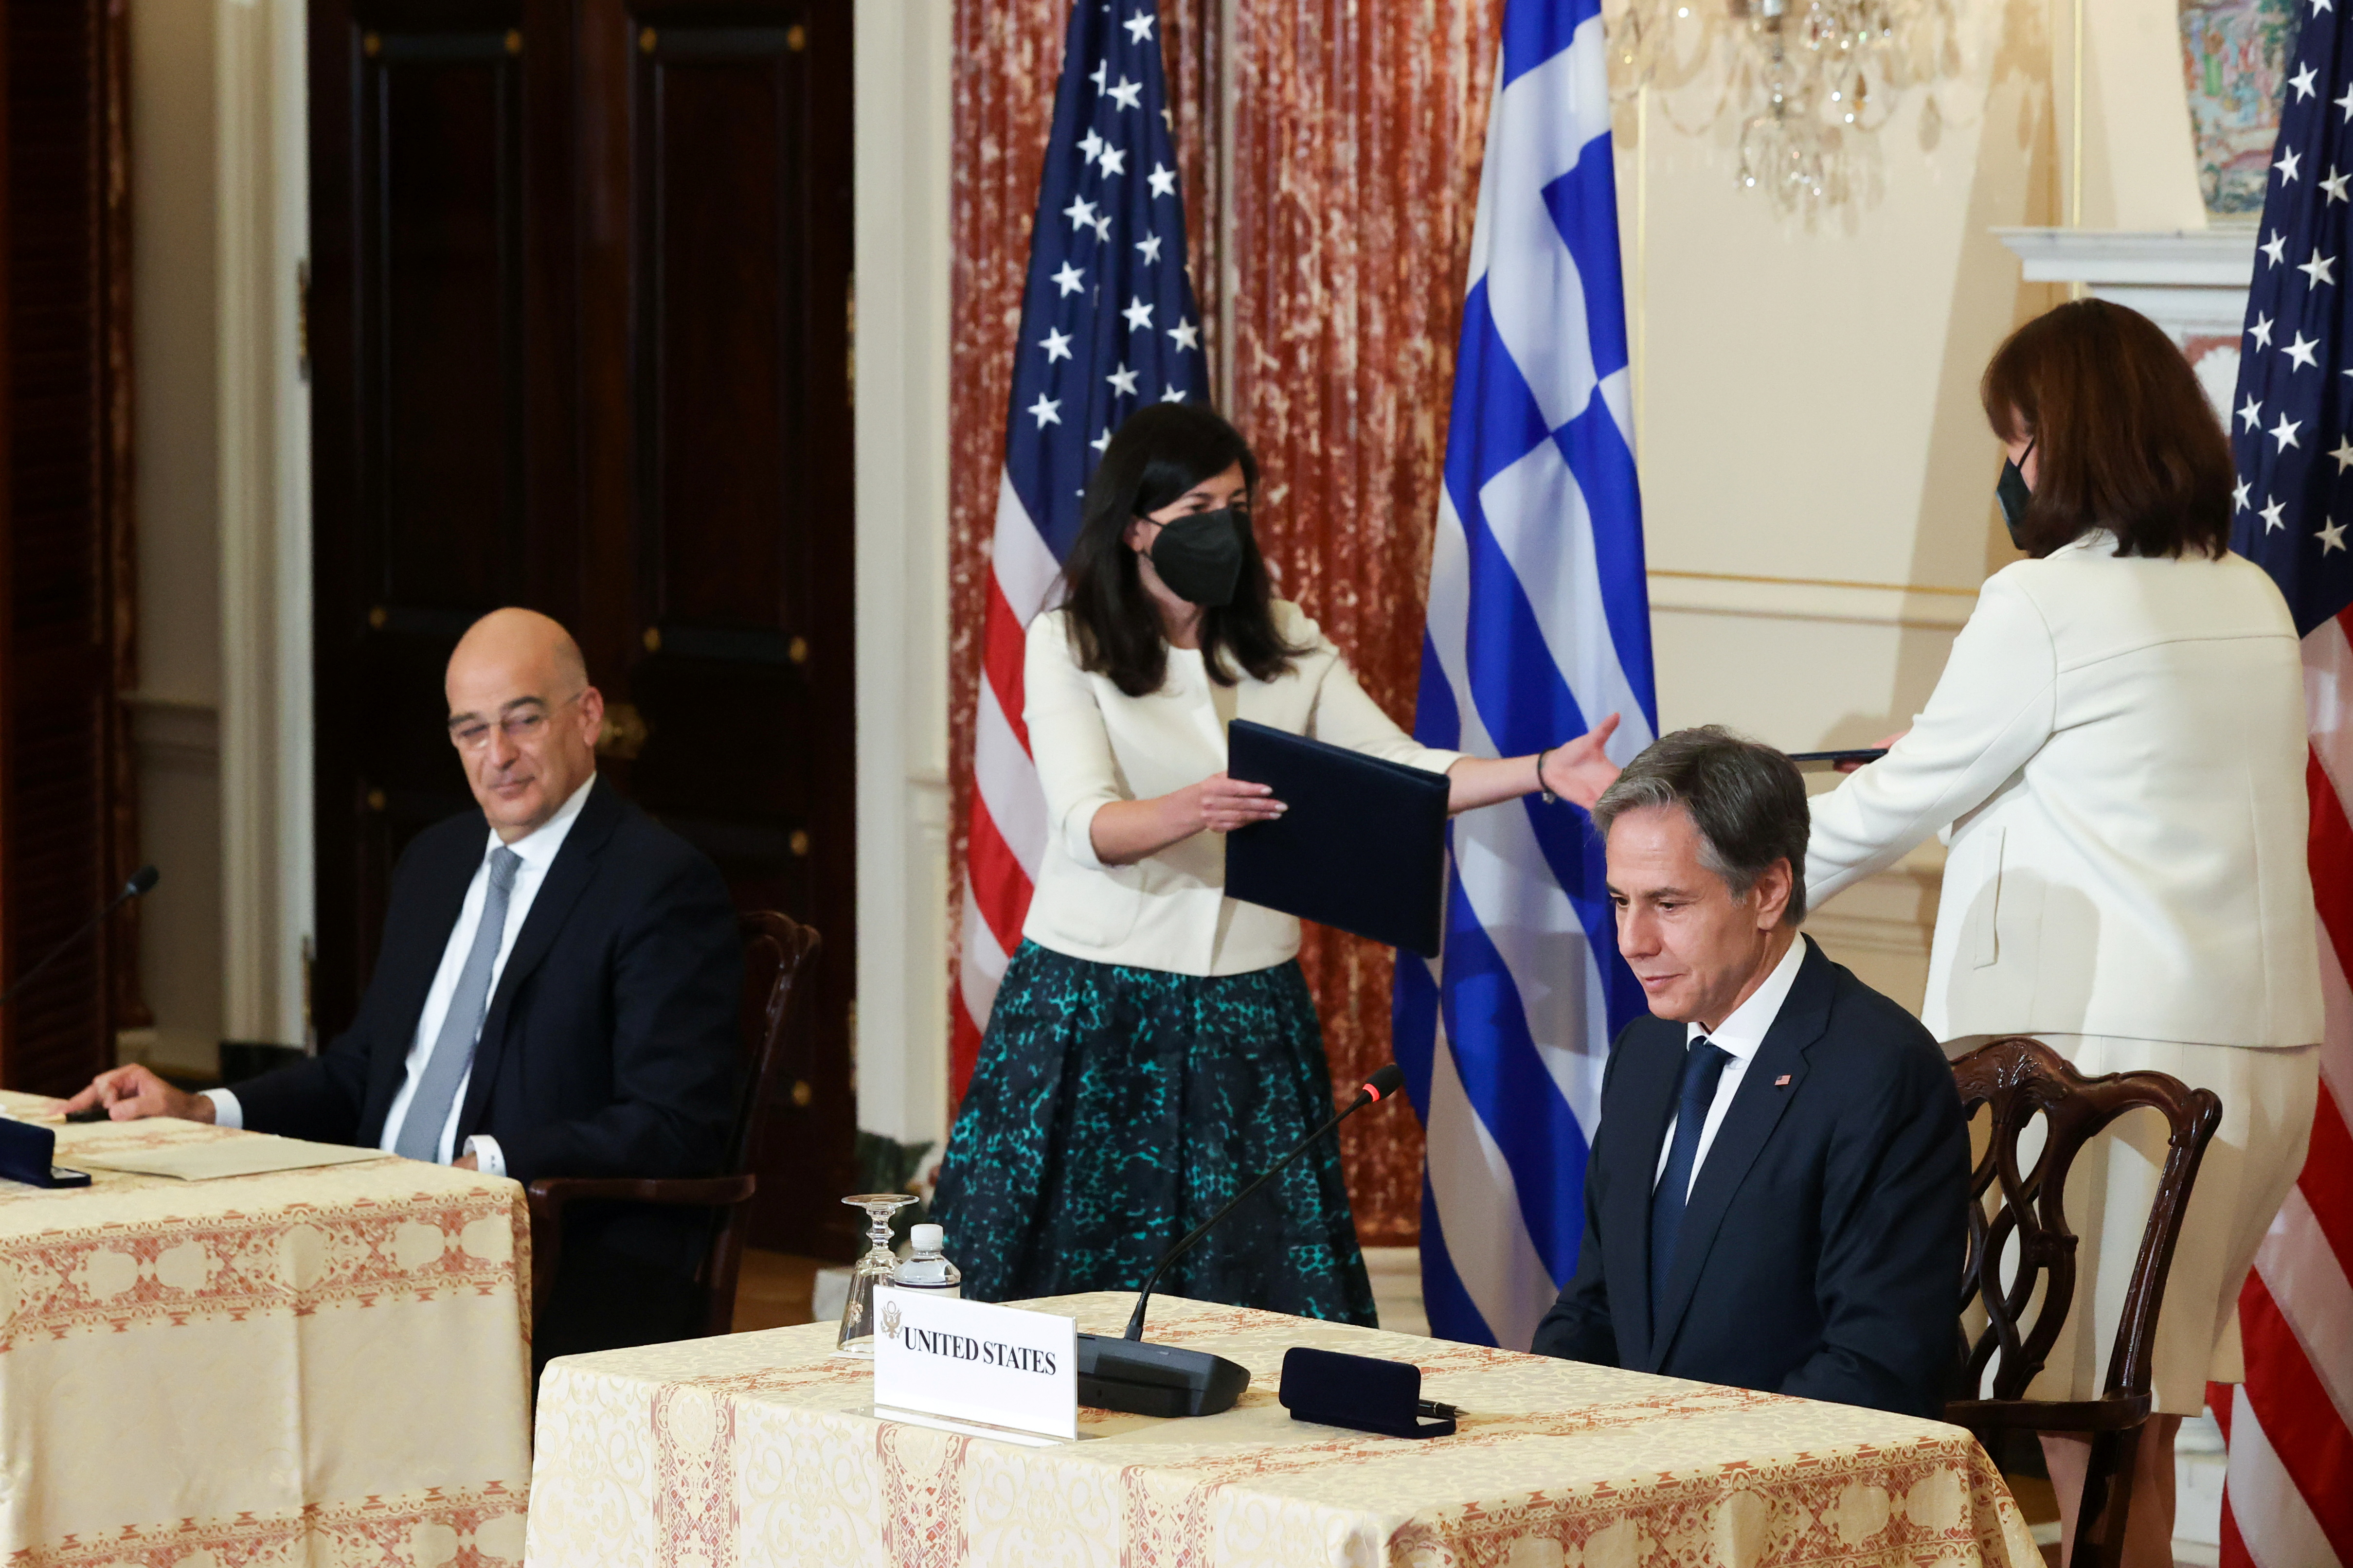 Aides exchange folios as U.S. Secretary of State Antony Blinken and Greece's Foreign Minister Nikos Dendias sign the renewal of the U.S.-Greece Mutual Defense Cooperation Agreement at the State Department in Washington, U.S. October 14, 2021.  REUTERS/Jonathan Ernst